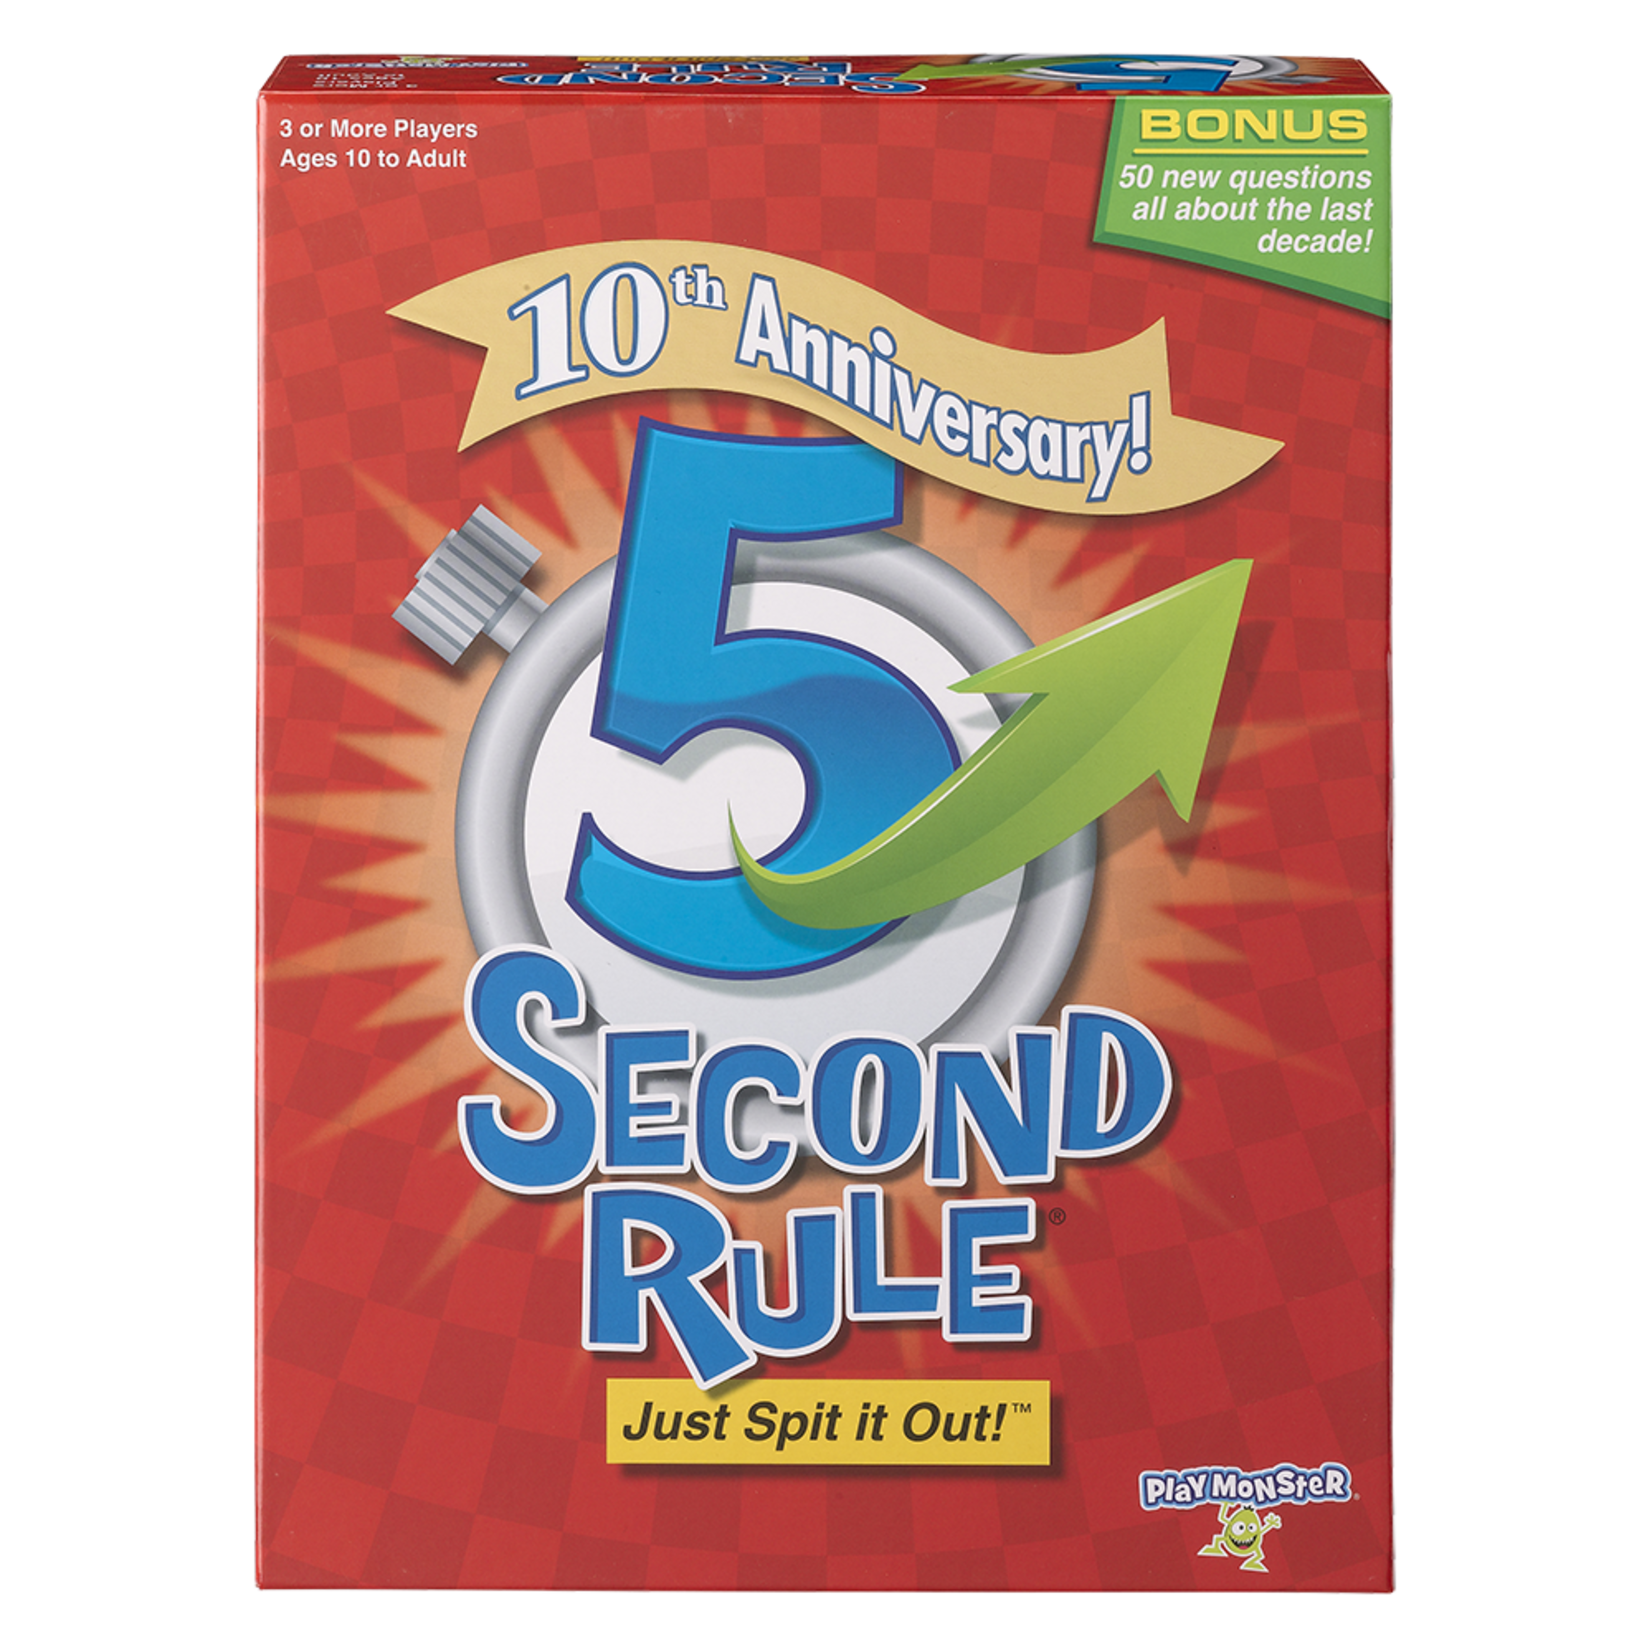 Playmonster 5 Second Rule Anniversary Edition